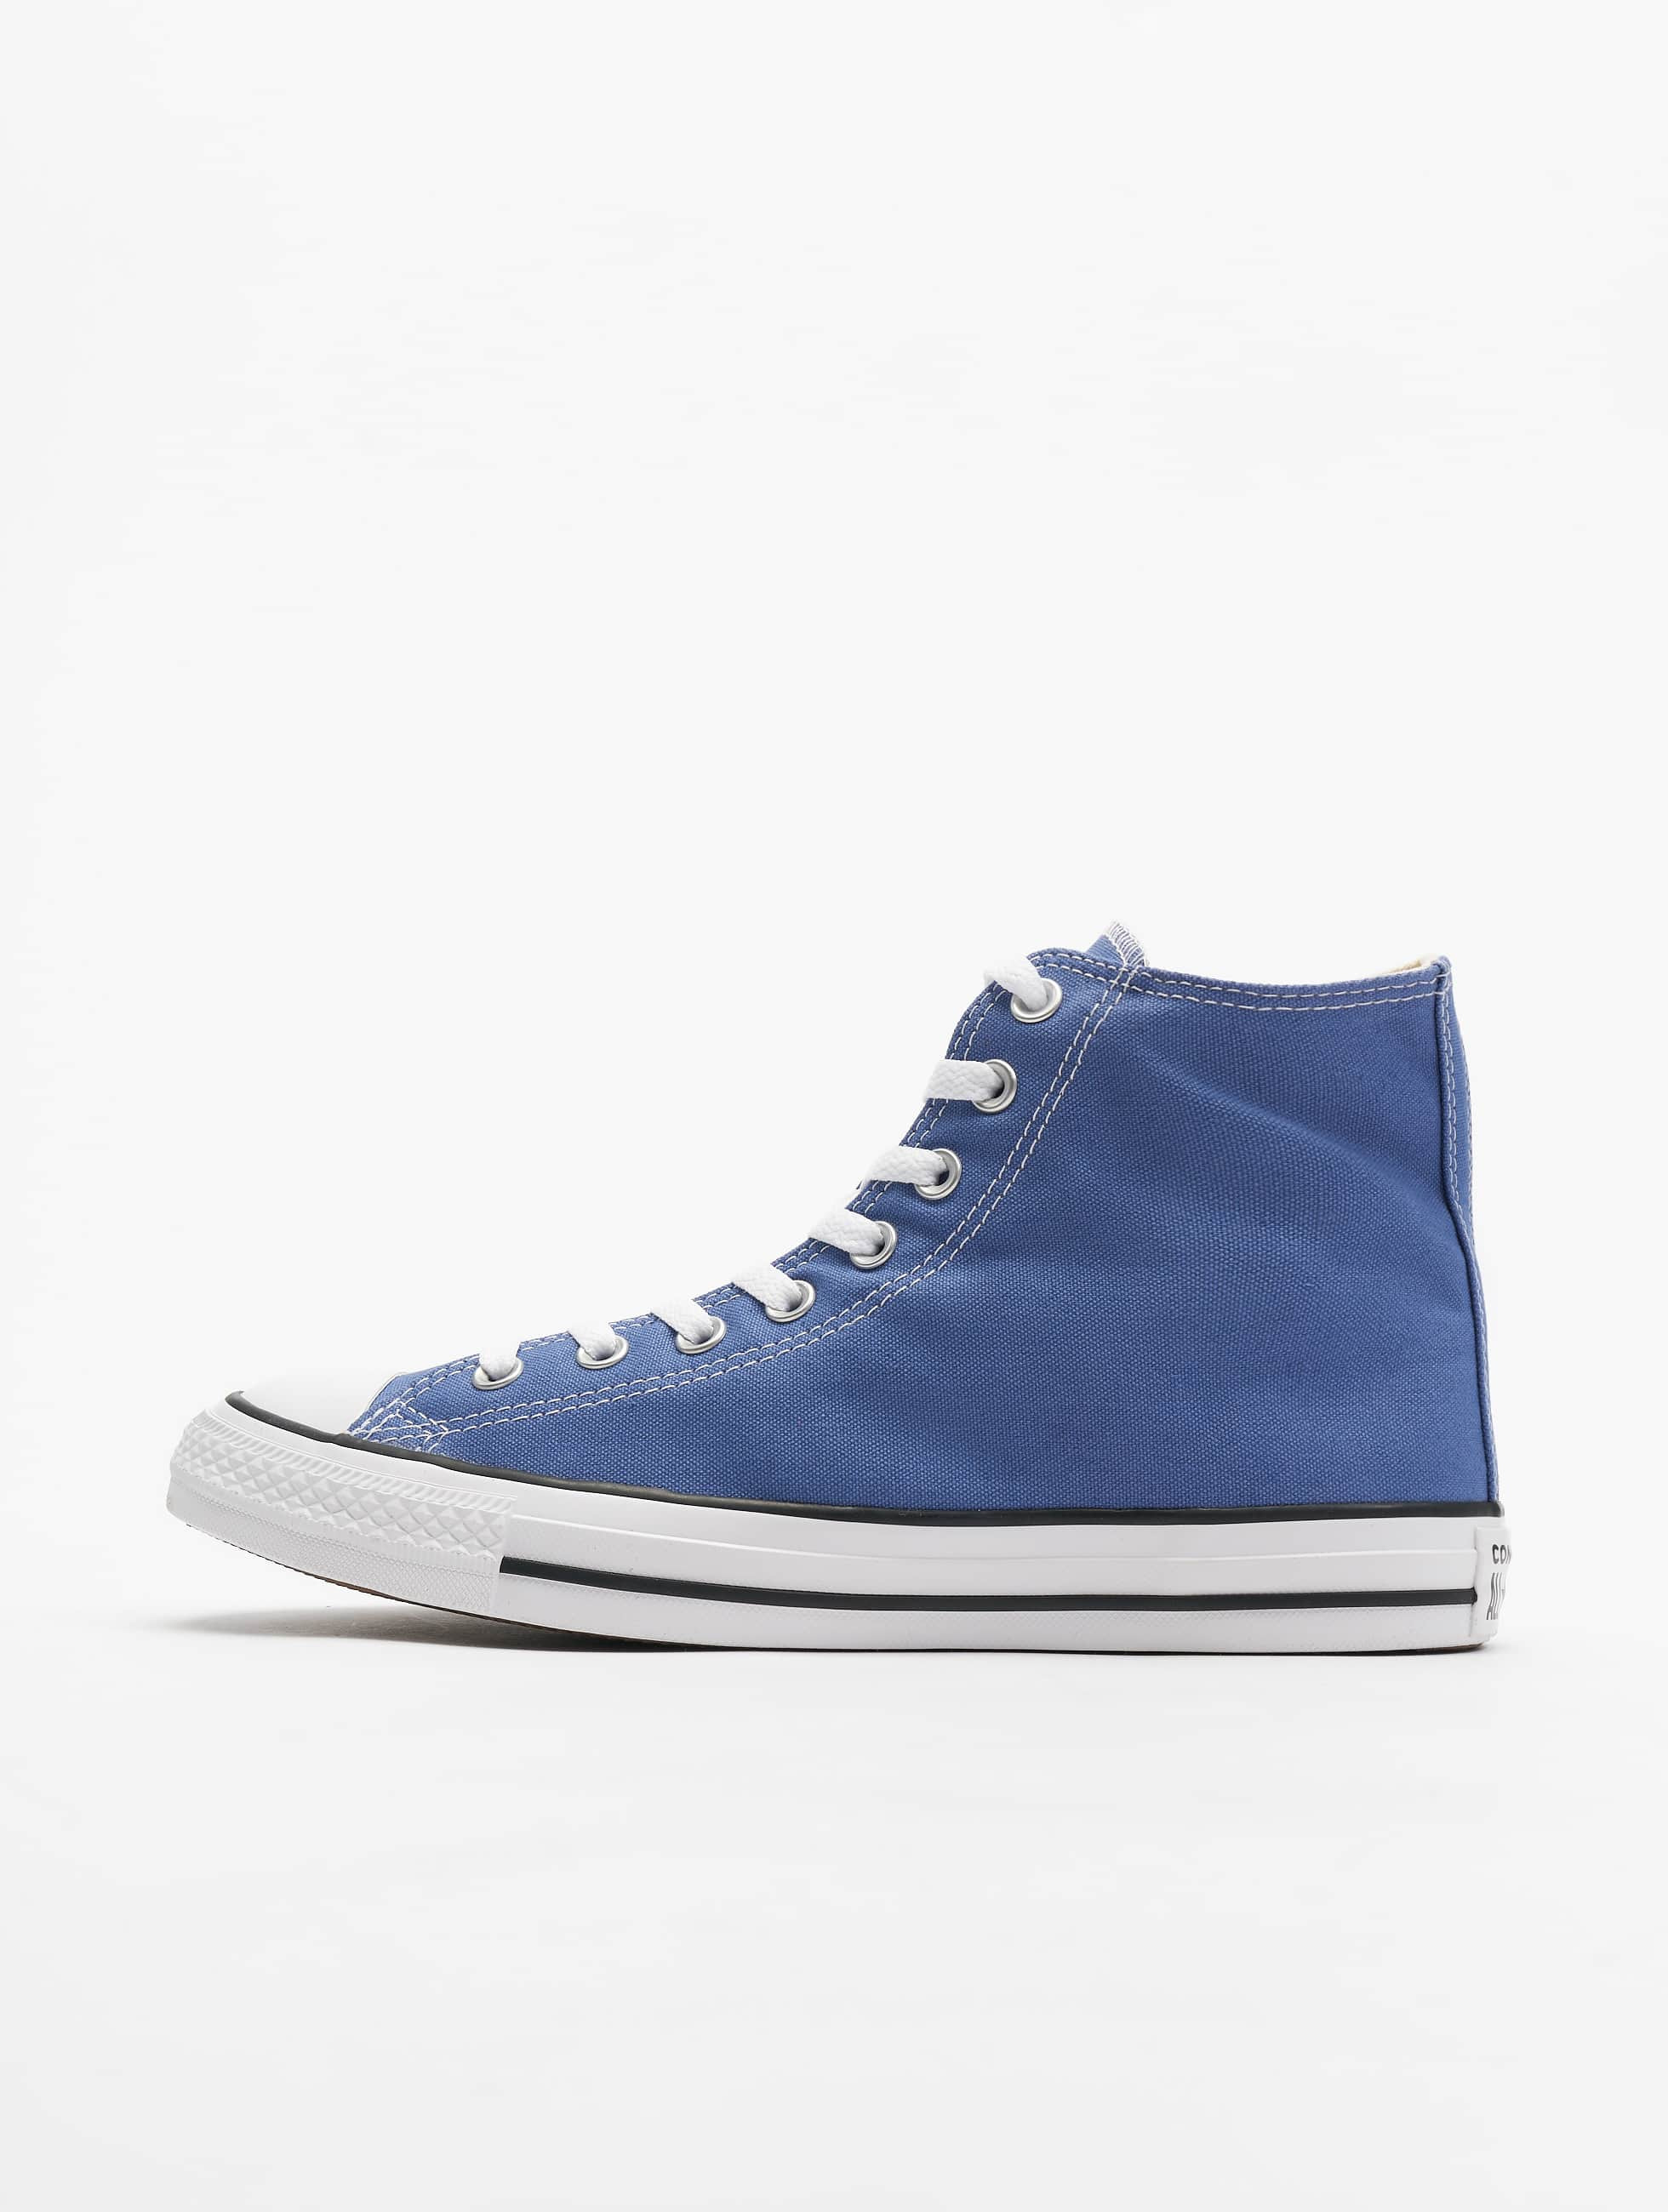 Converse Chuck Tailor All Star Hi Sneakers Washed Indigo